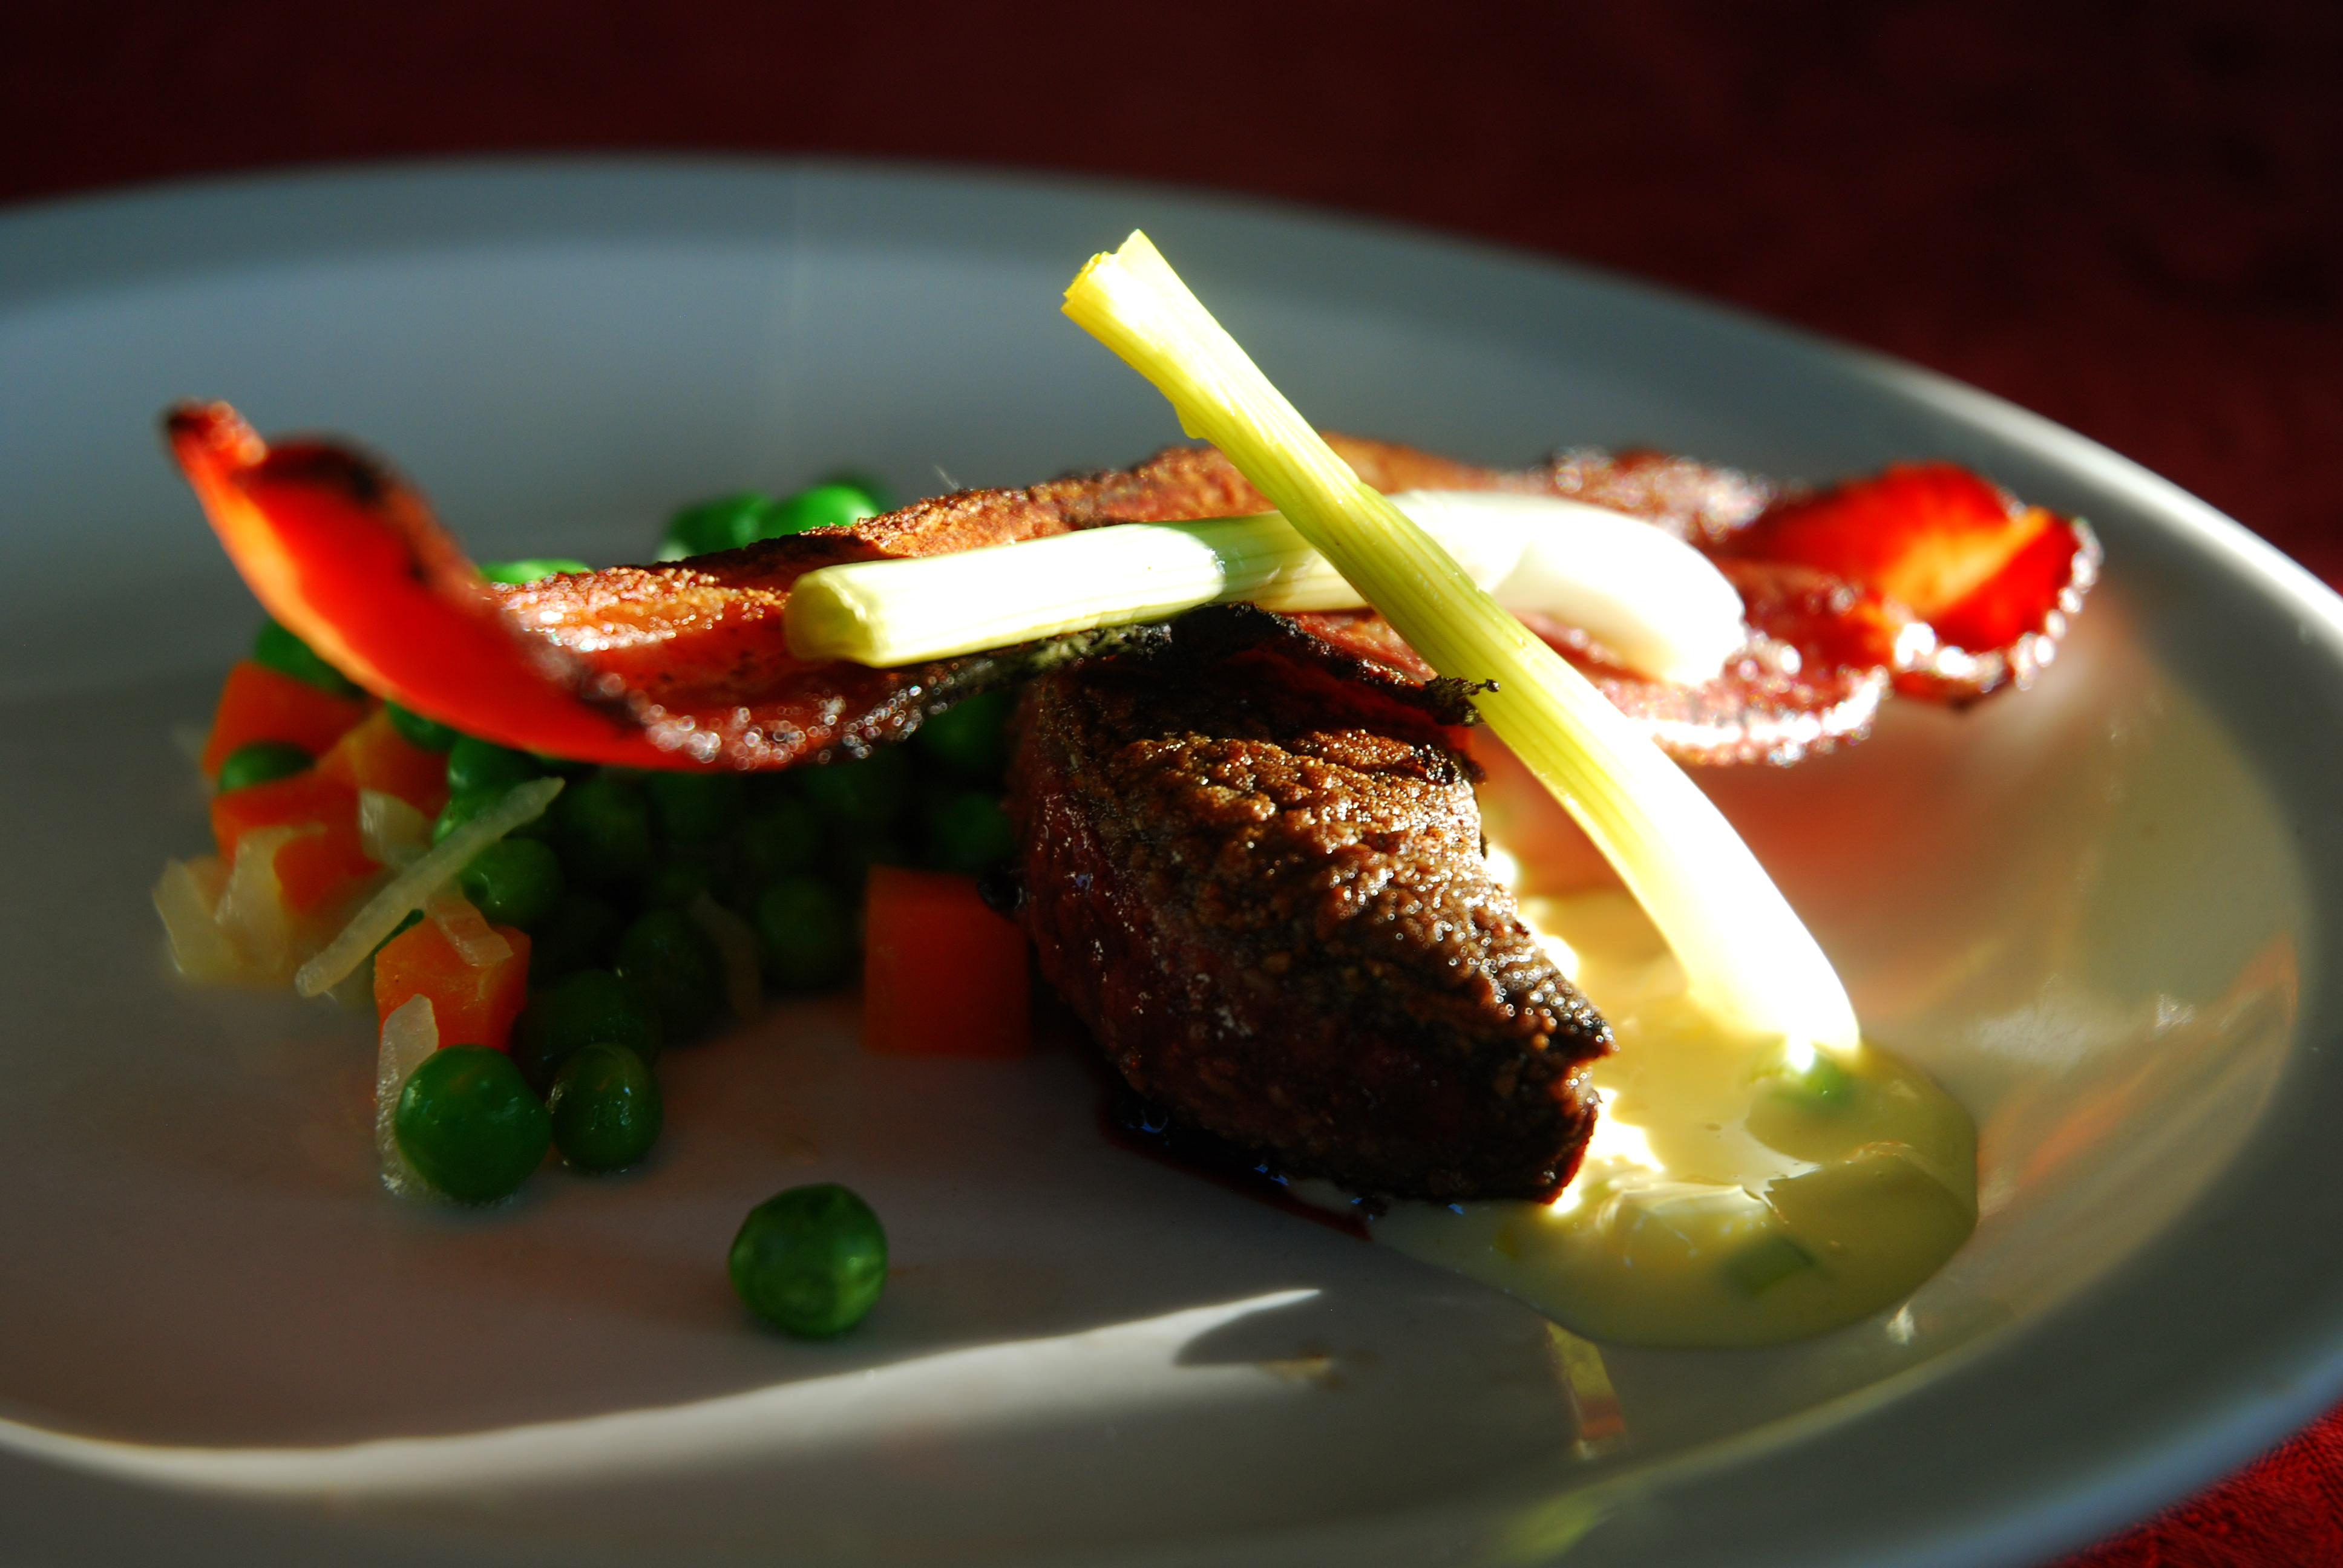 Lambs Liver with Pickled Spring Onions, Speck with Peas &amp; Carrots